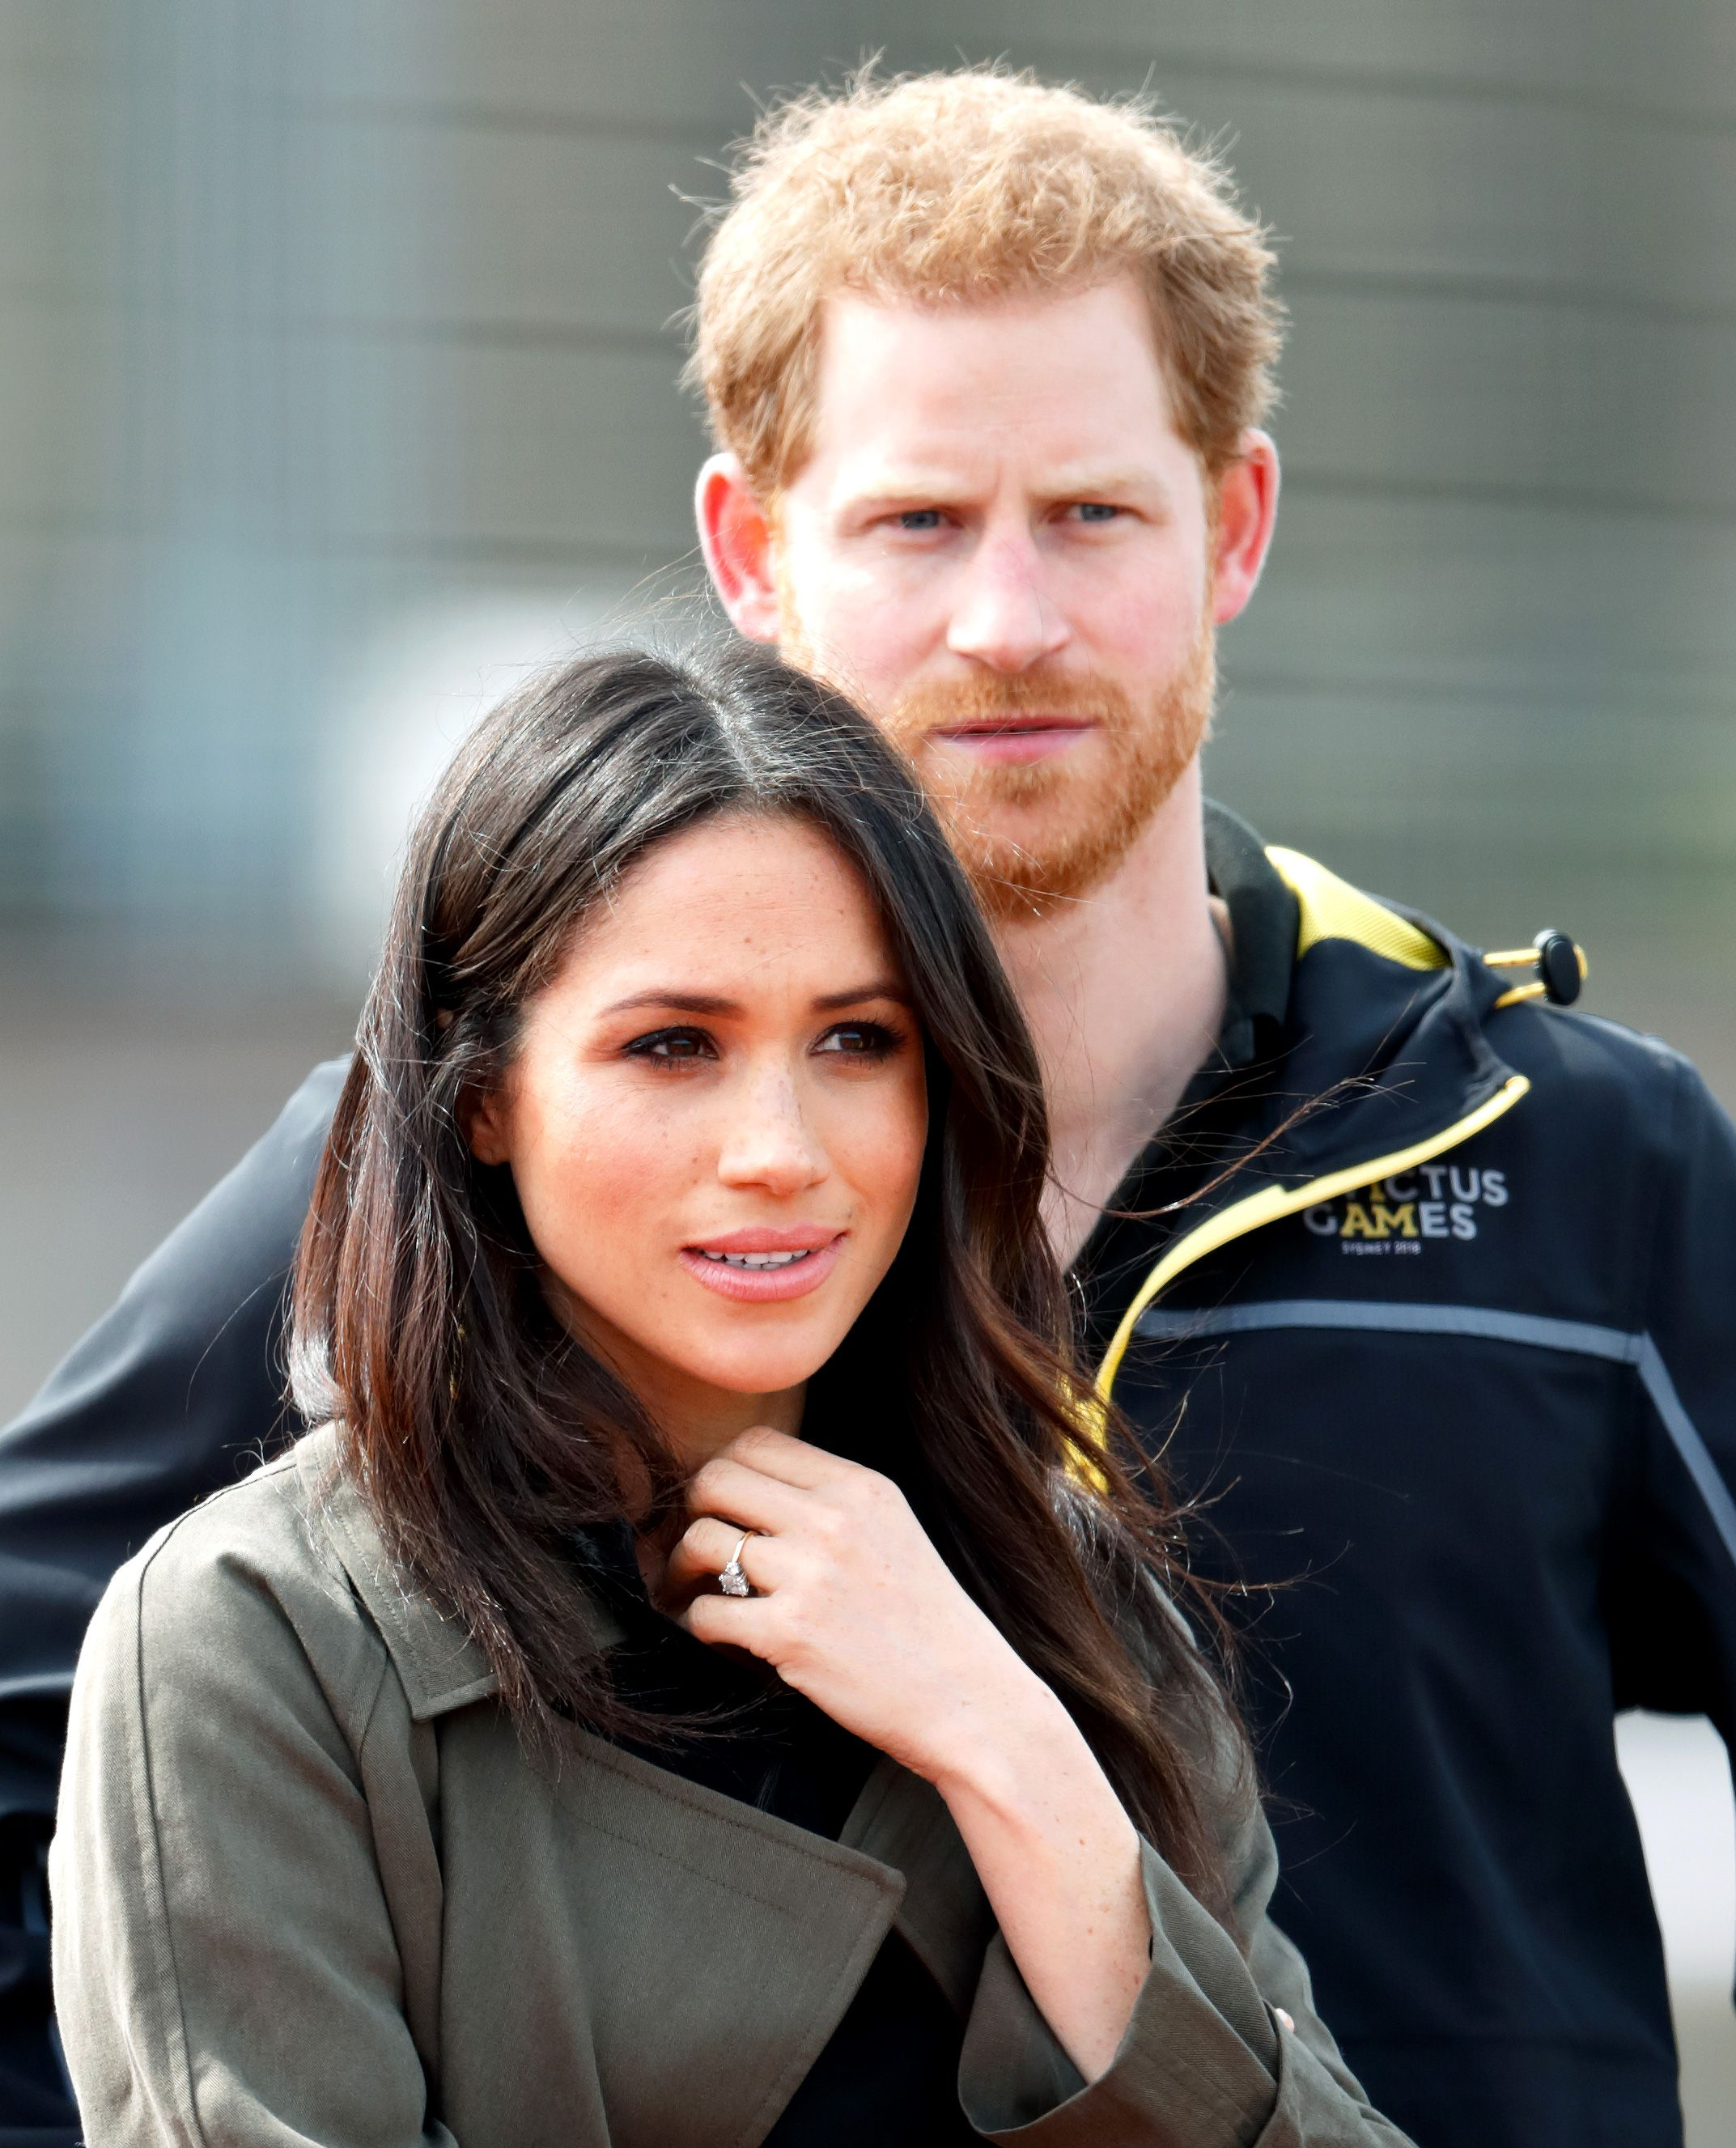 Prince Harry's Close Friend Says He and Meghan Markle Have 'Suffered a Lot' in the Aftermath of Exit